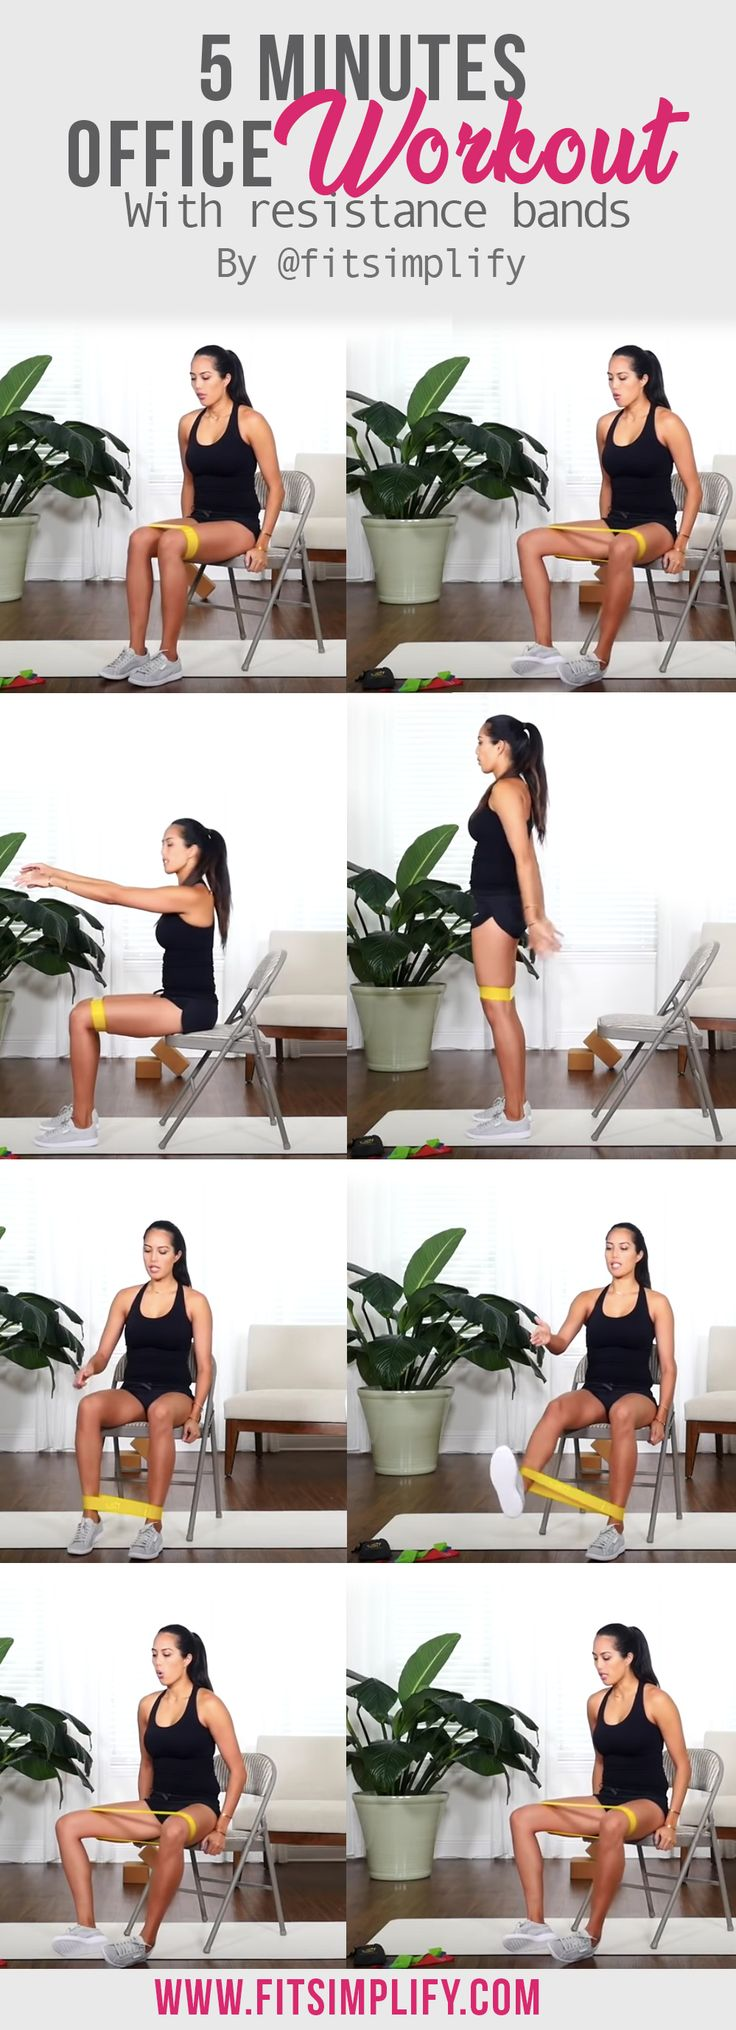 As part of our 9-5 workout series, here's a great little workout that you can try right in your office at any time, using resistance bands. To try this at work tomorrow, grab your band by simply clicking the pic.